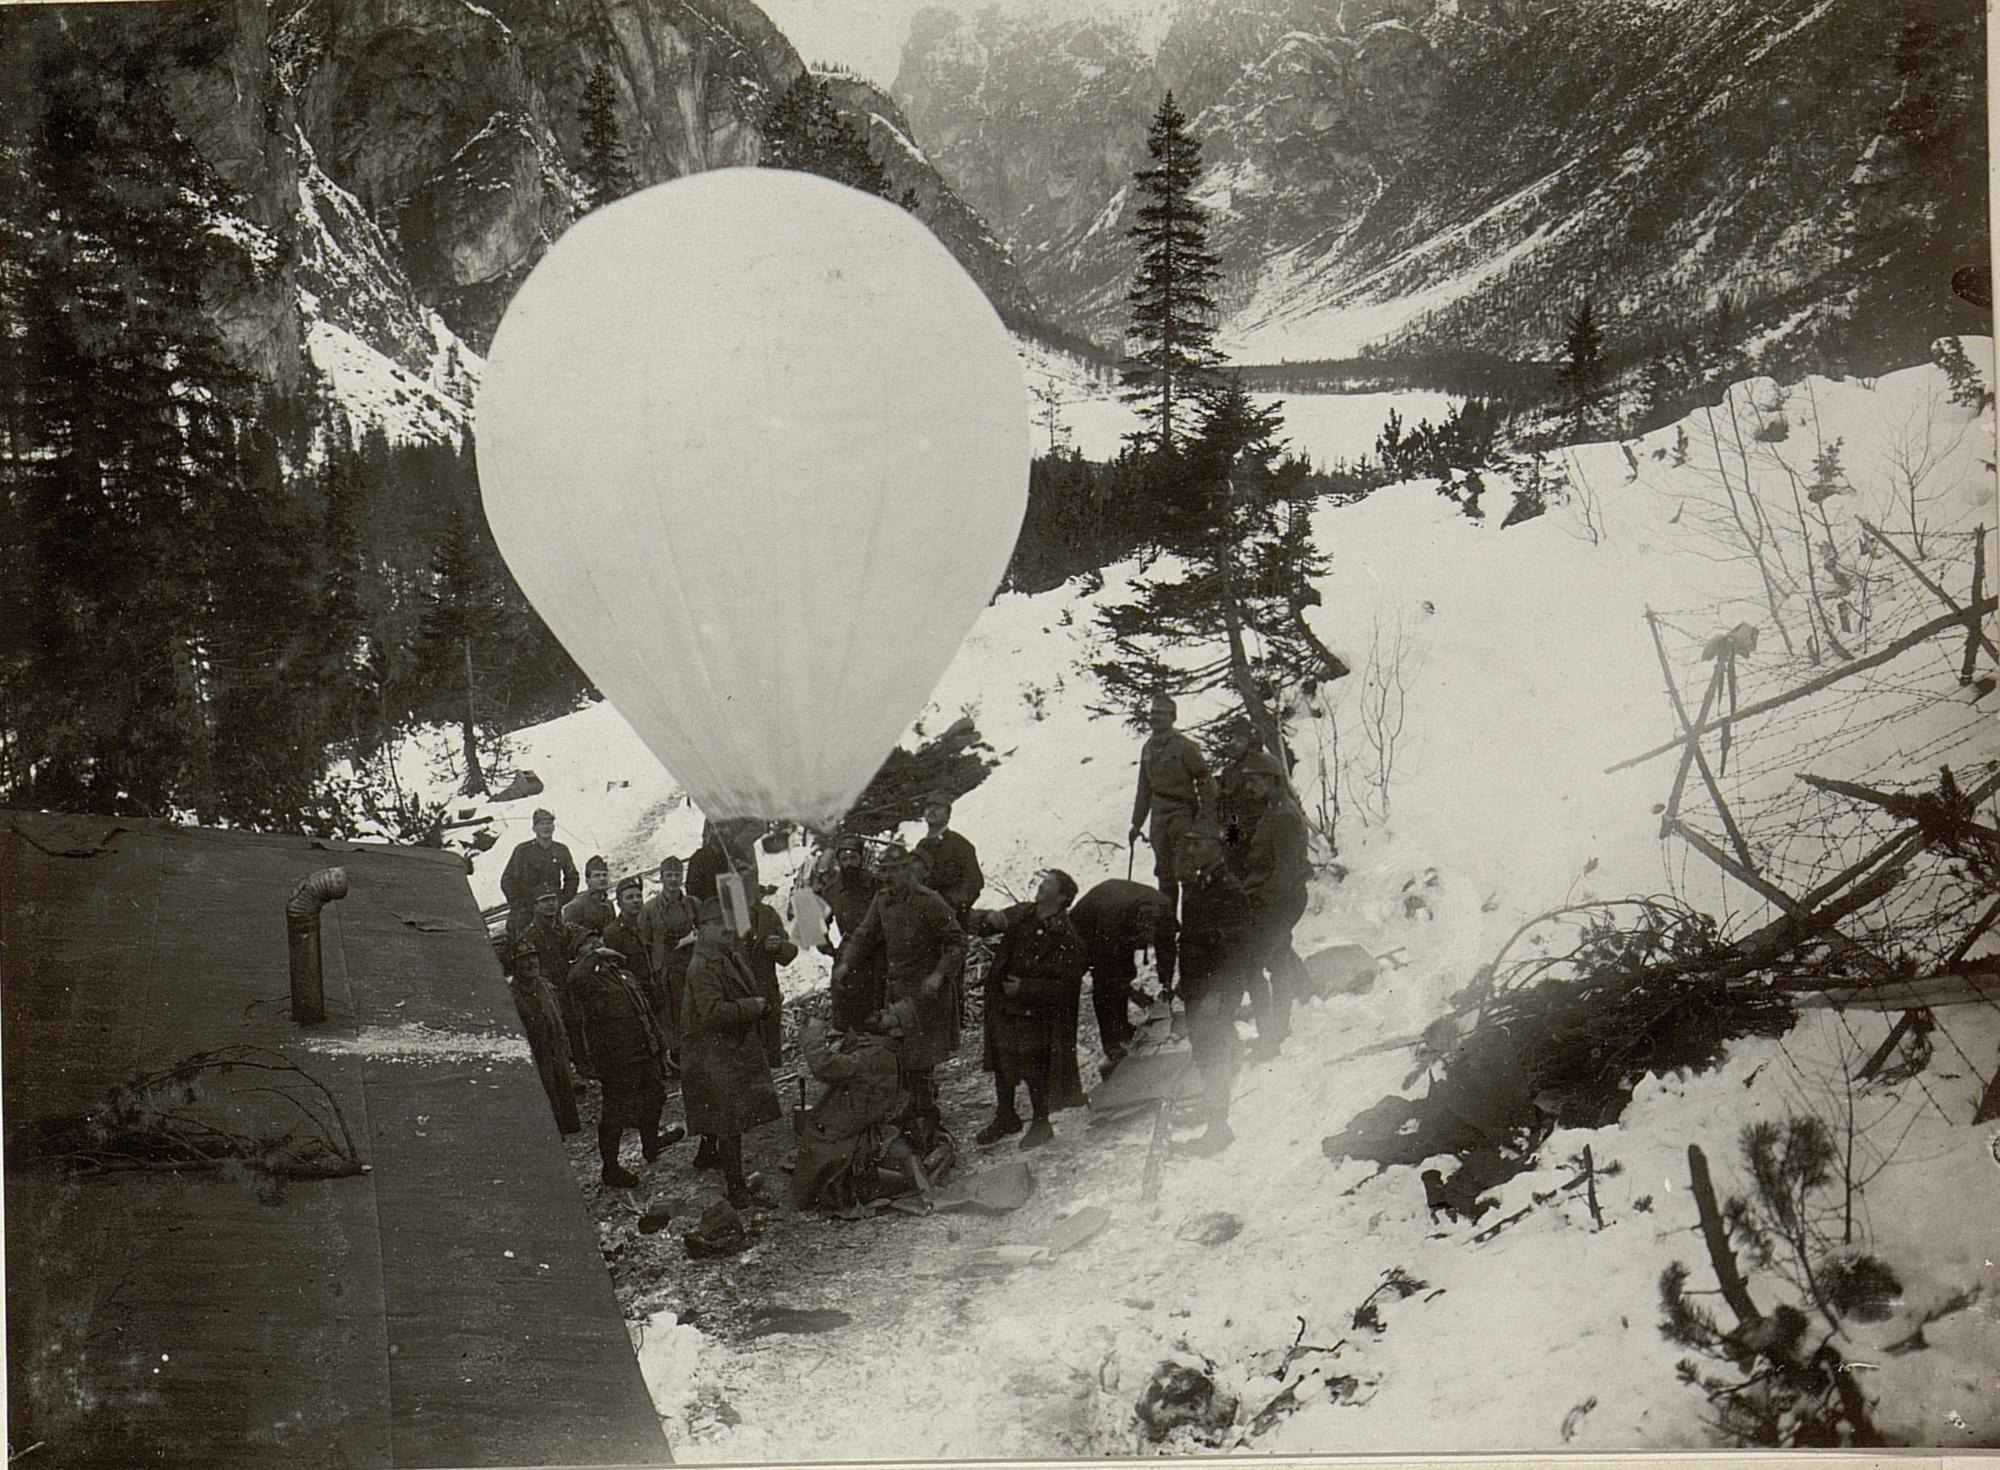 Paper balloon with proclamations is launched from Monte Piano